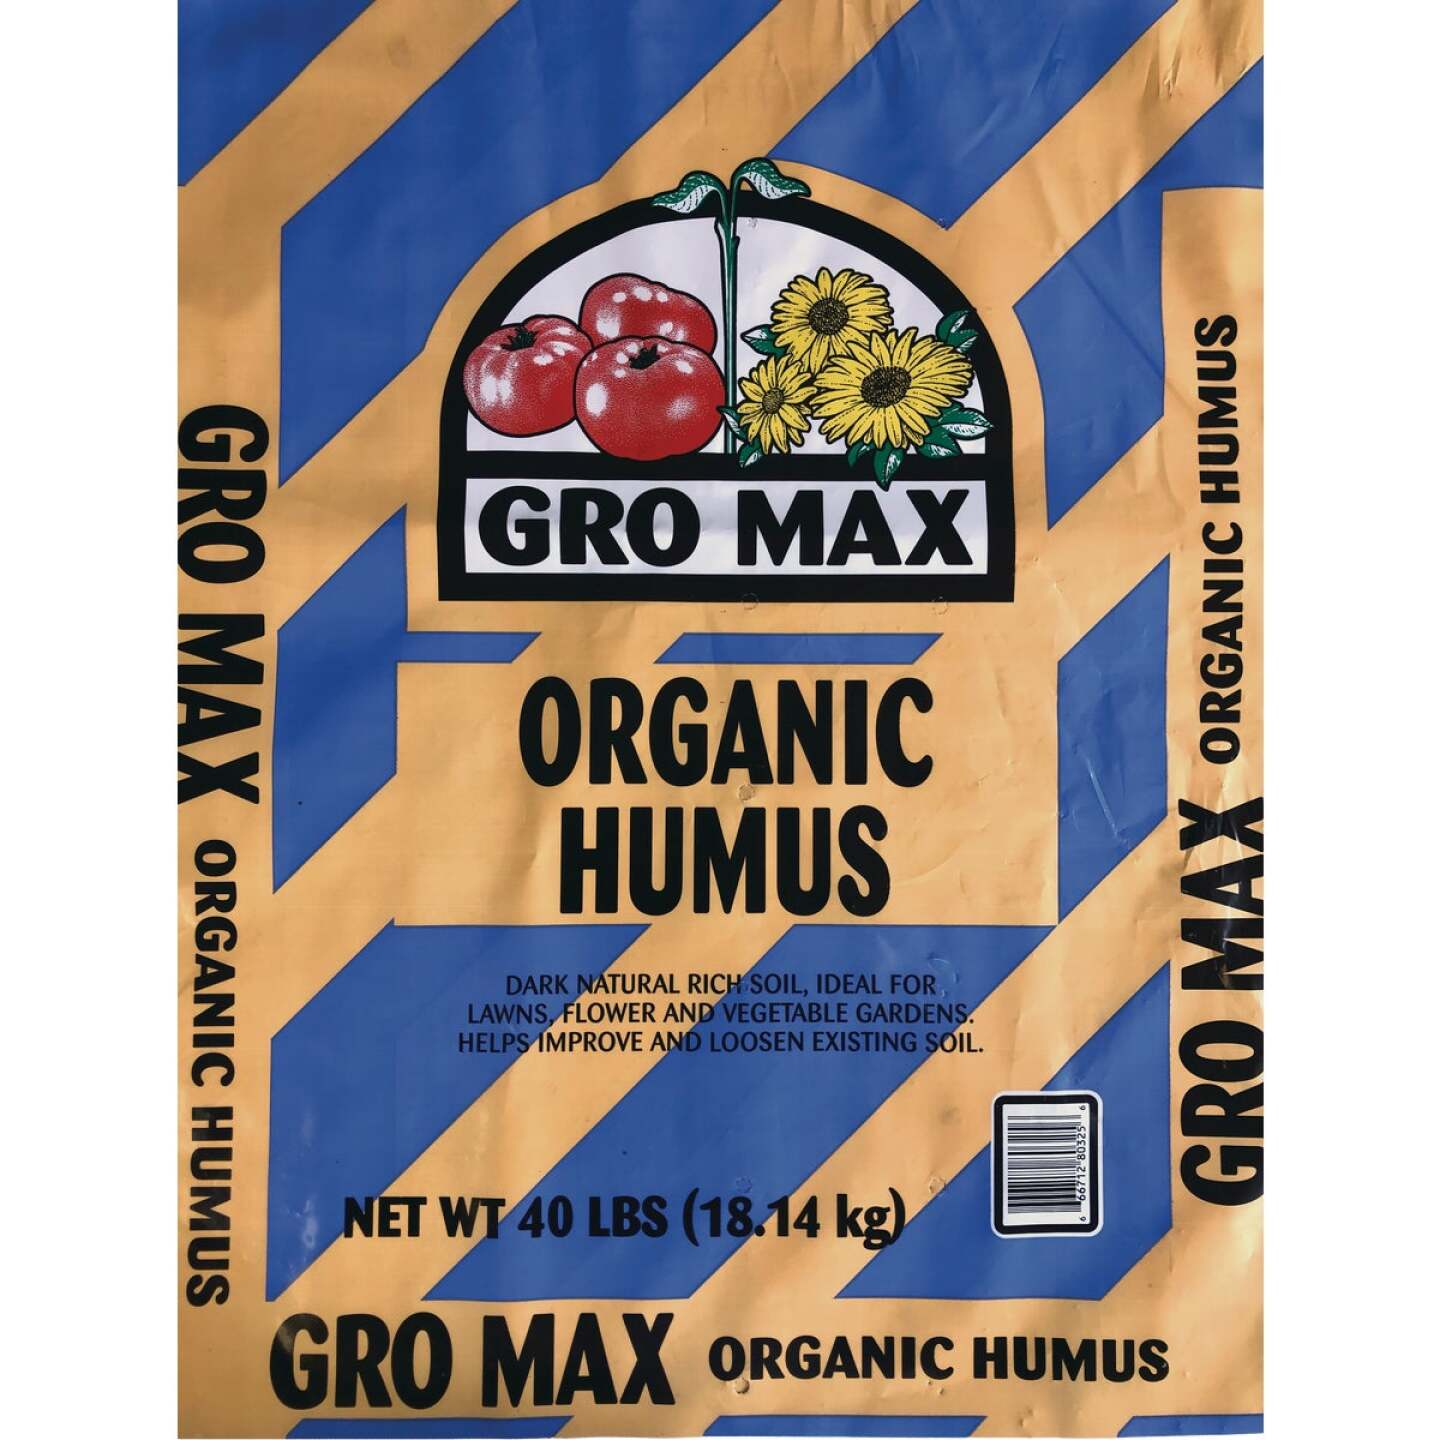 Gro Max 40 Lb. 4 Sq. Ft. Coverage Humus & Manure Image 1